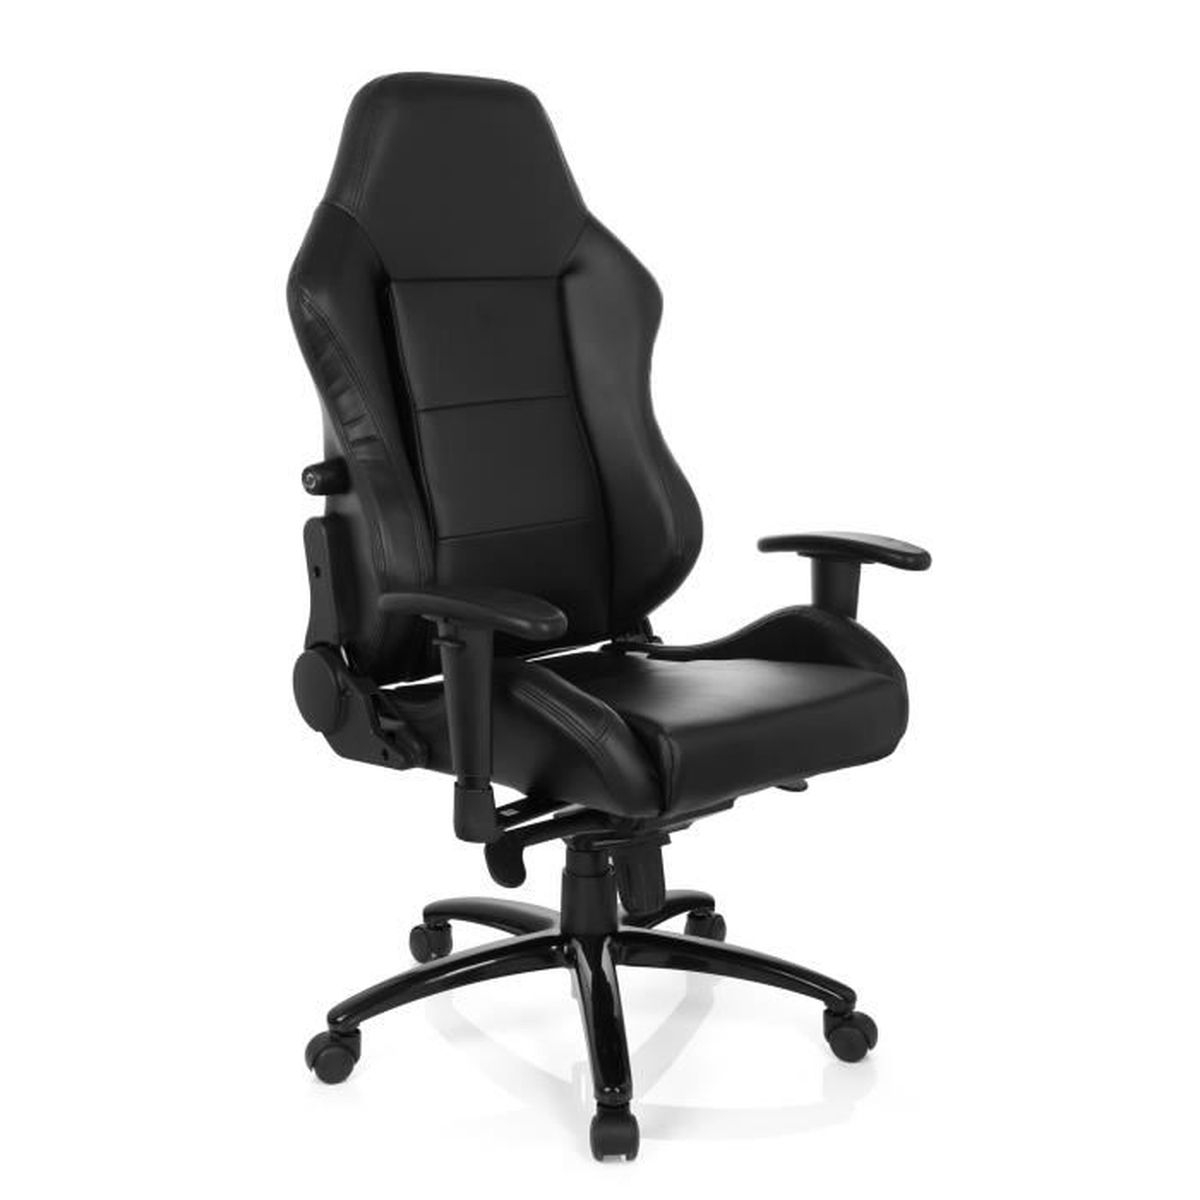 chaise gaming chaise de bureau gaming indy ii pu noir hjh office achat vente chaise de. Black Bedroom Furniture Sets. Home Design Ideas